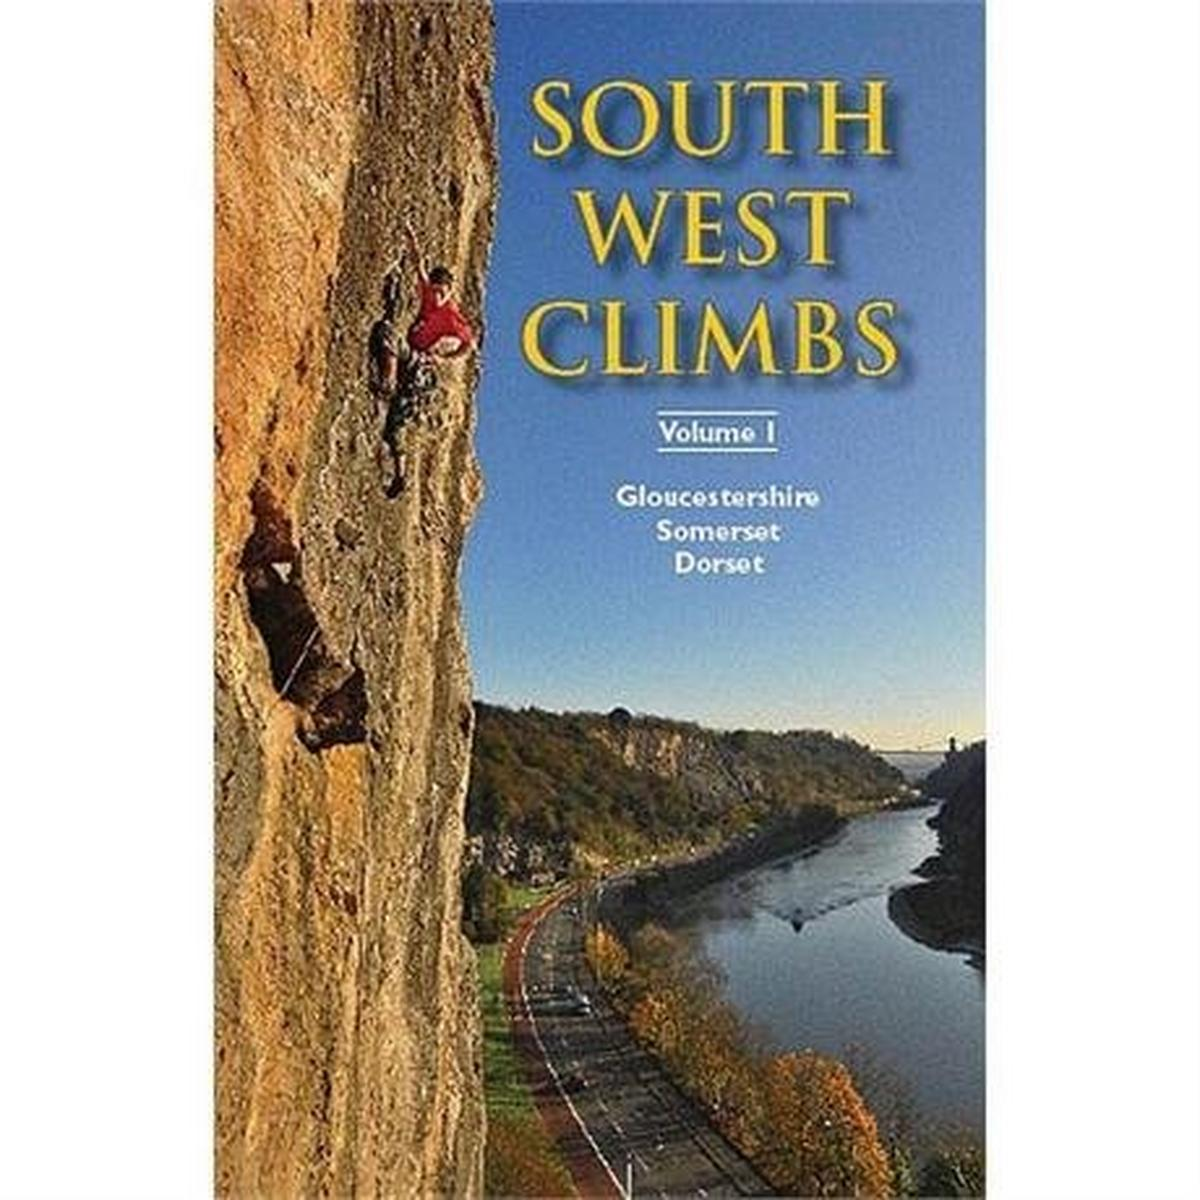 Miscellaneous Climbing Guide Book: South West Climbs, Vol 1